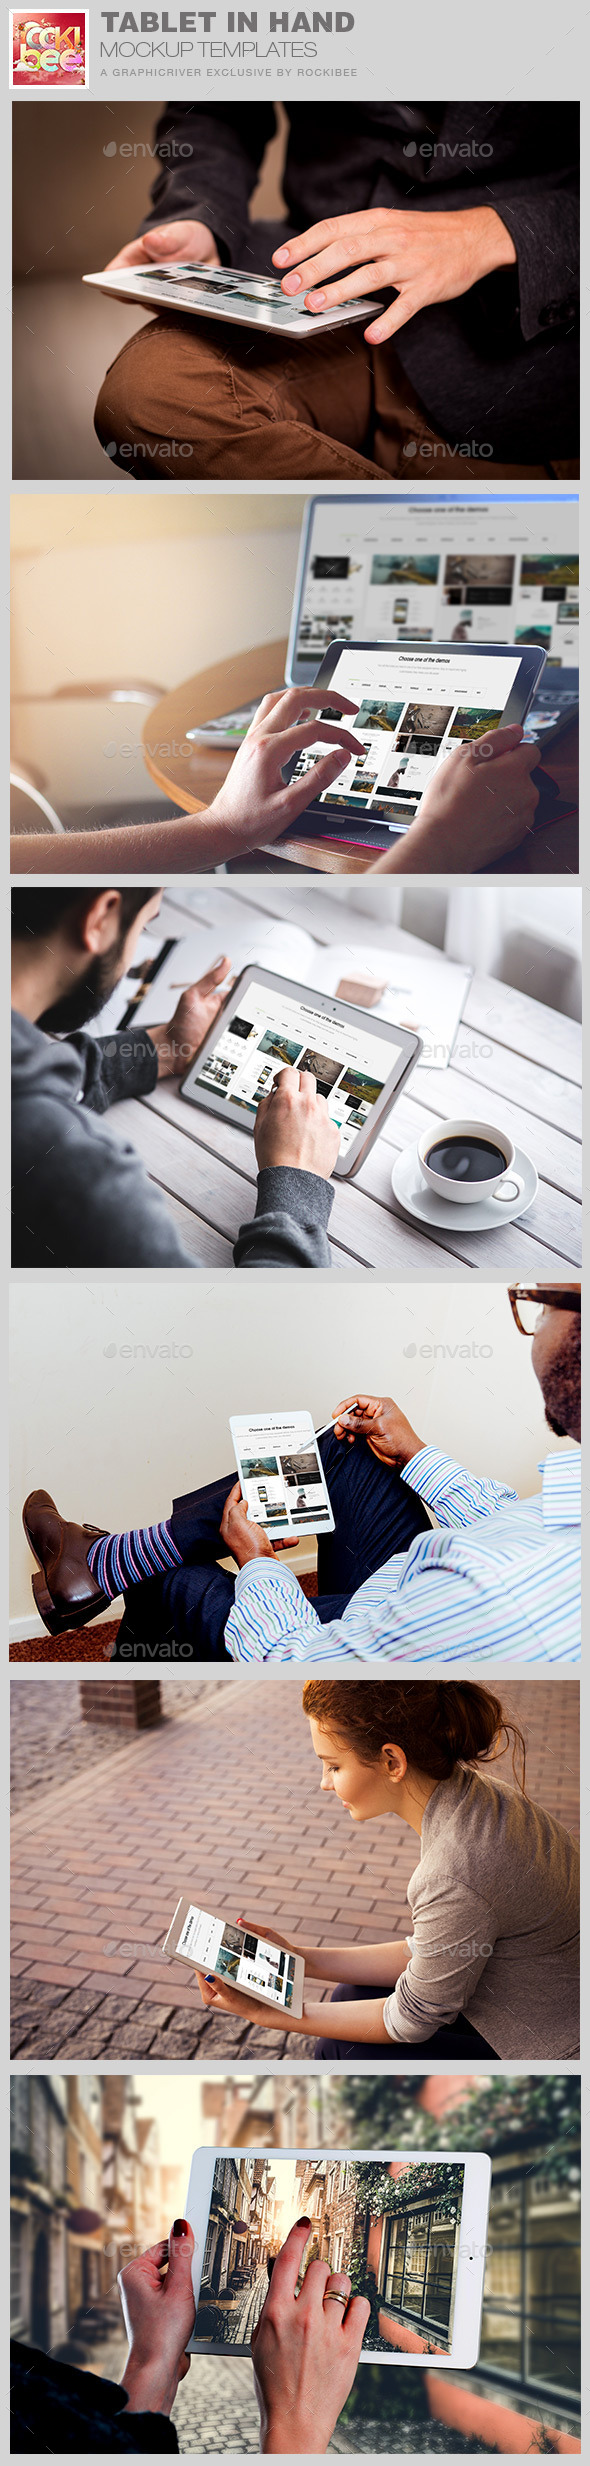 Tablet in Hand Mockup Template - Product Mock-Ups Graphics